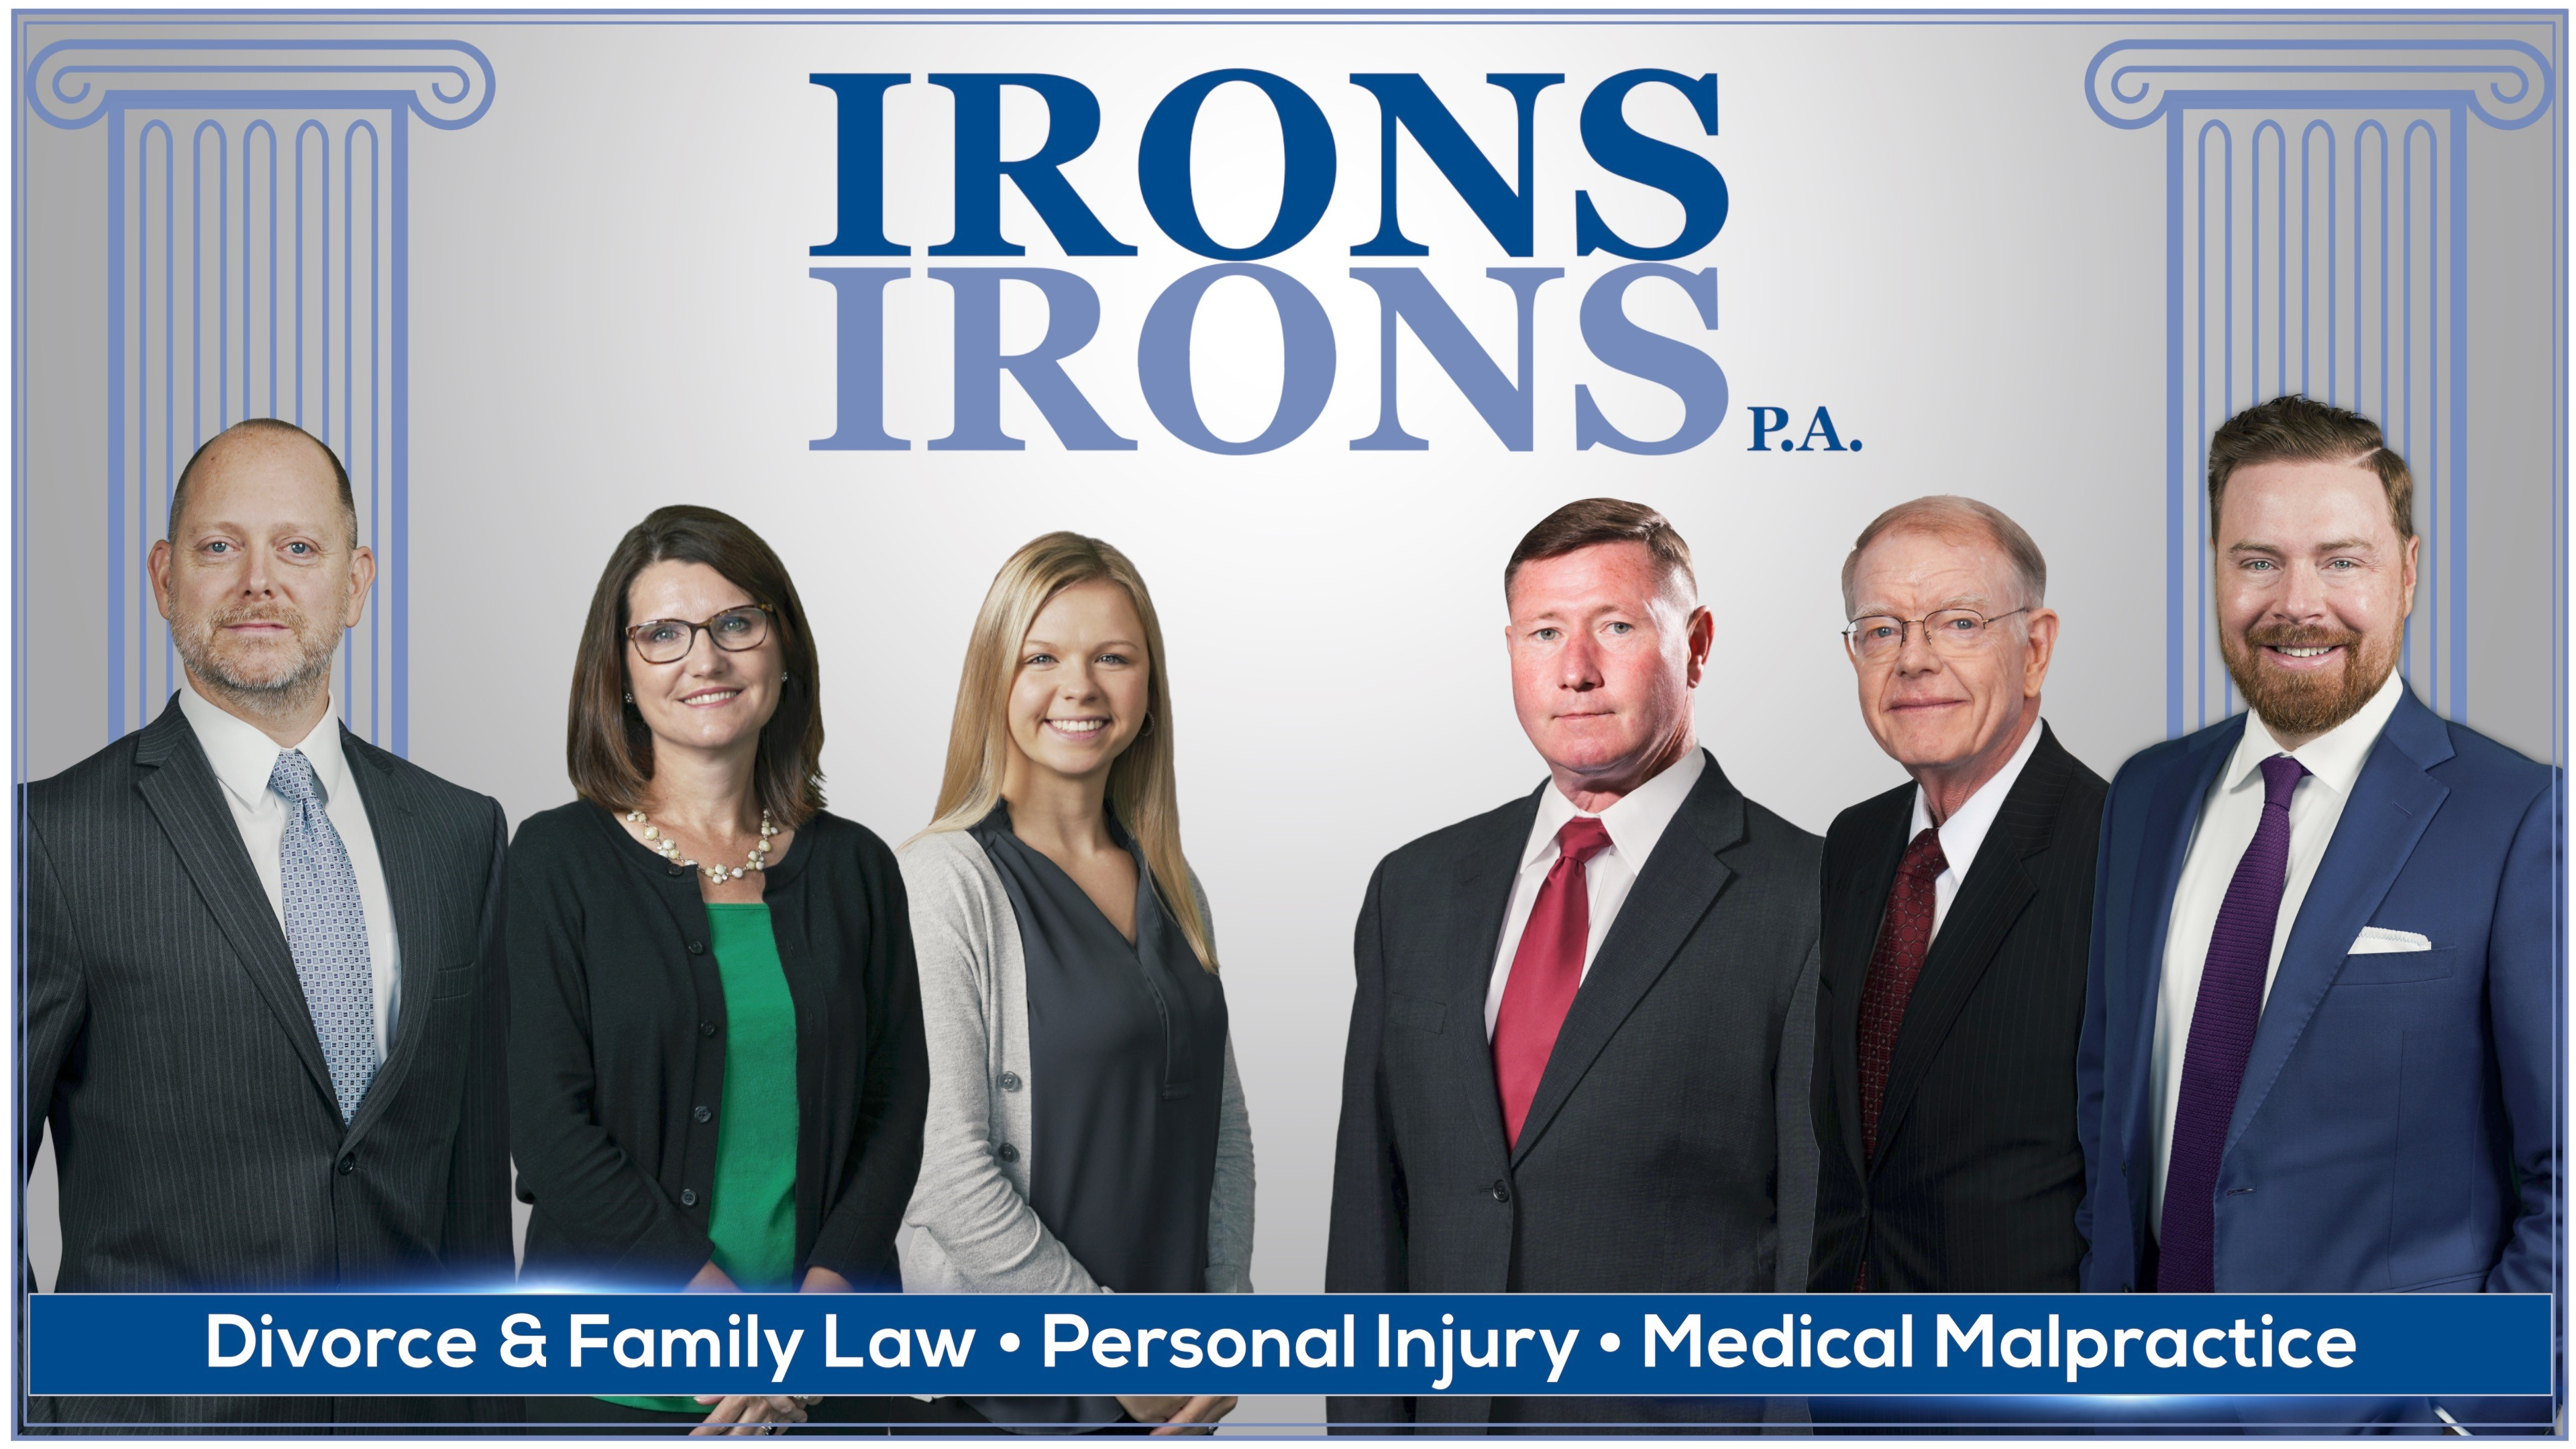 Irons & Irons P.A. reviews   Divorce & Family Law at 225 Broad St - New Bern NC